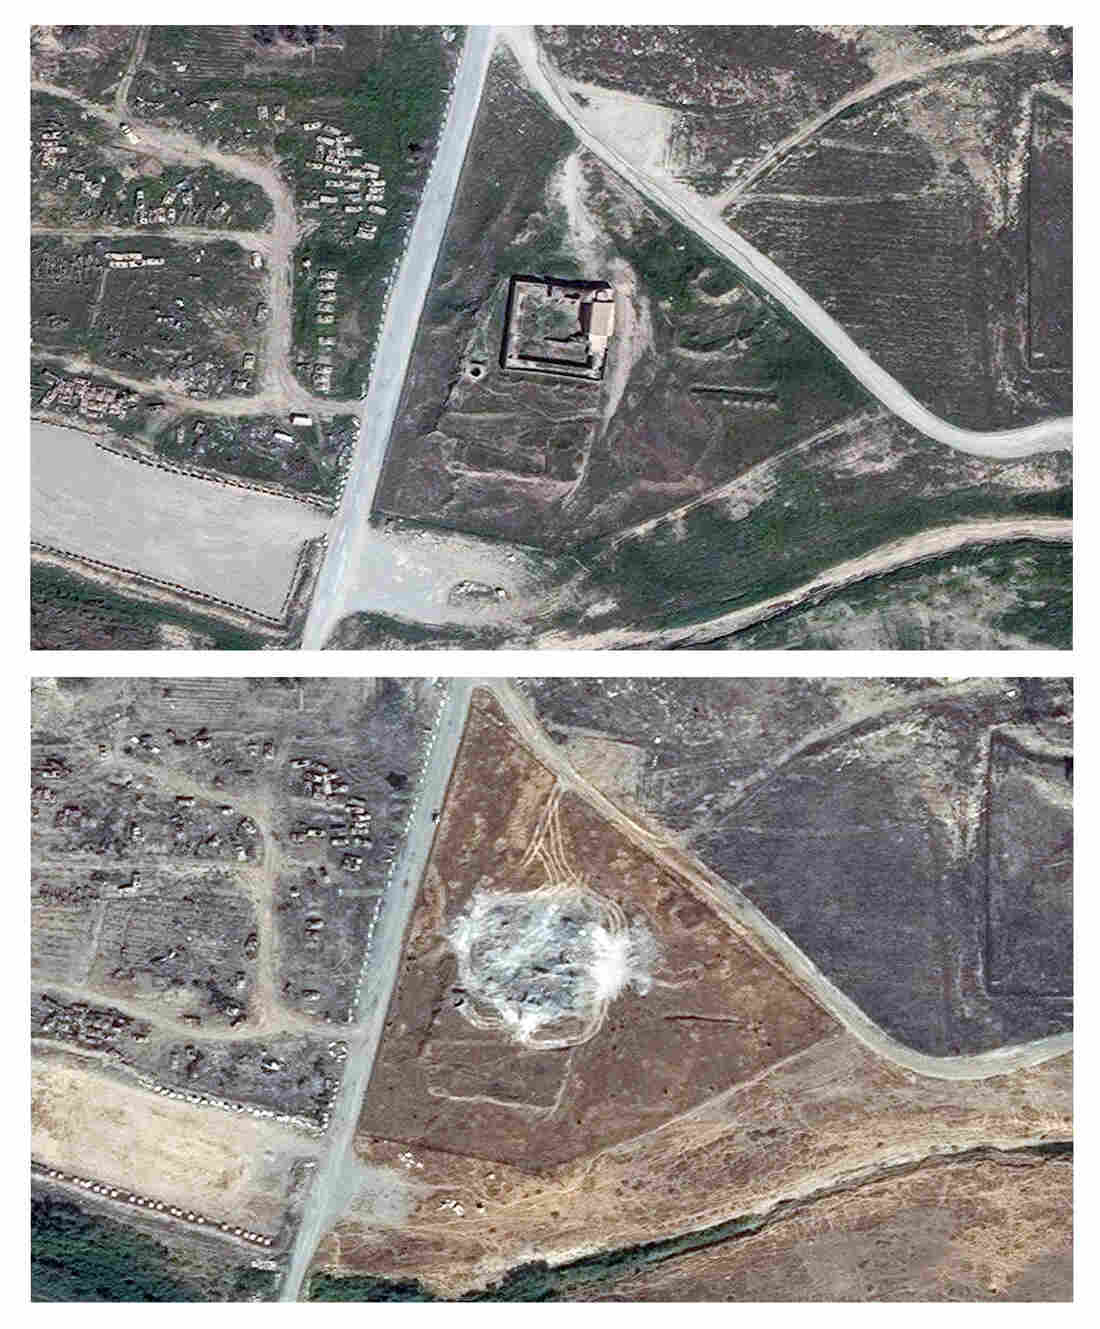 This combination of two satellite images provided by DigitalGlobe, taken on March 31, 2011 (top), and Sept. 28, 2014, shows the site of the Christian monastery known as St. Elijah's, or Dair Mar Elia.